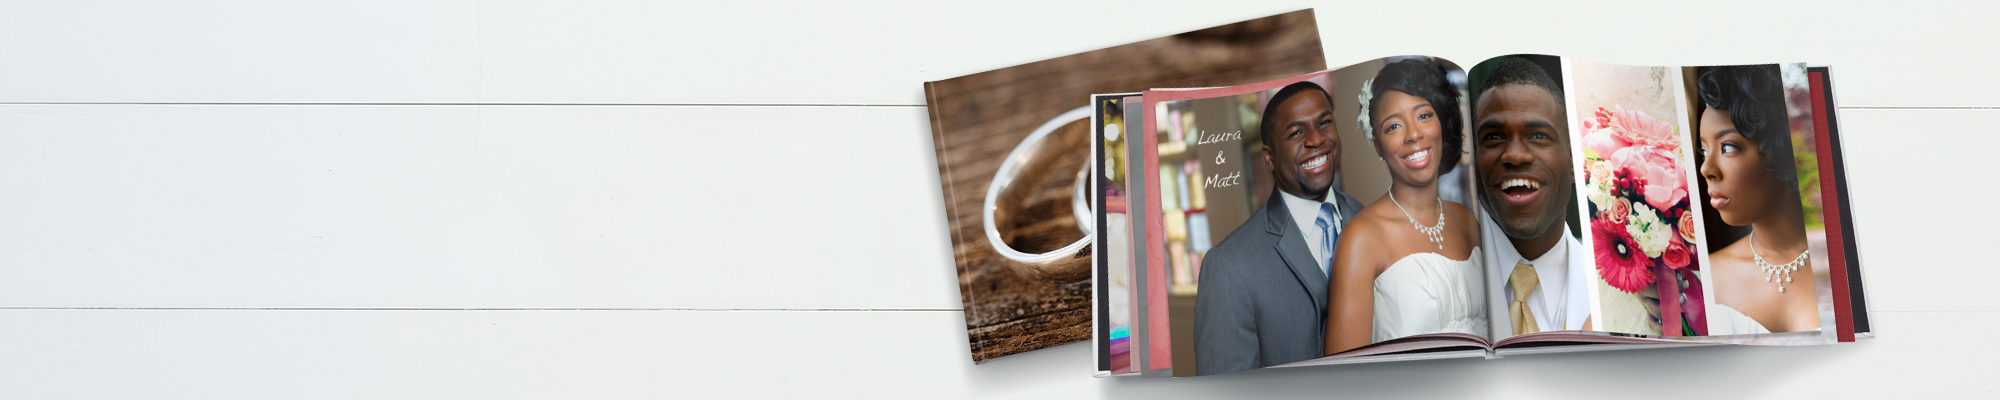 Wedding Photo Books Your big day deserves a book this beautiful - celebrate your special day by creating a stunning photo book